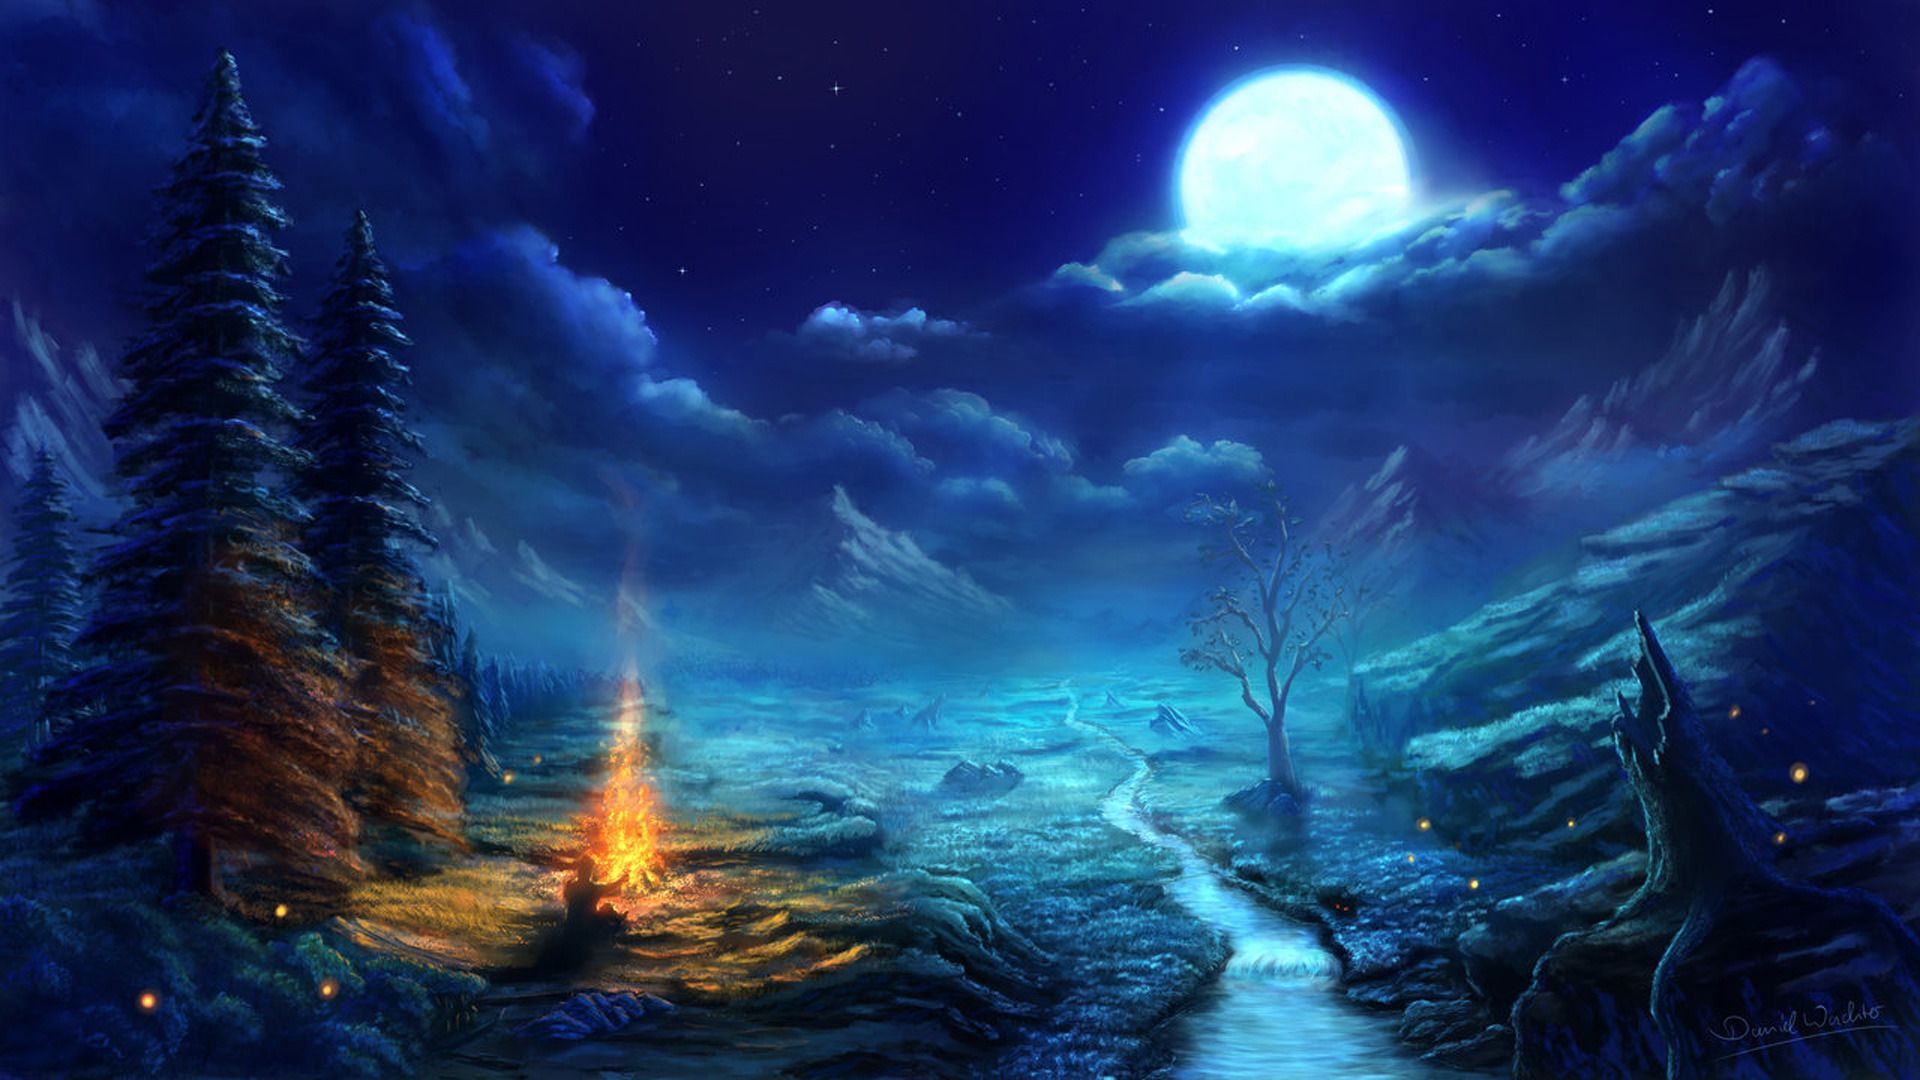 Anime Night Scene Wallpaper Amazing Resolution o3306r3s